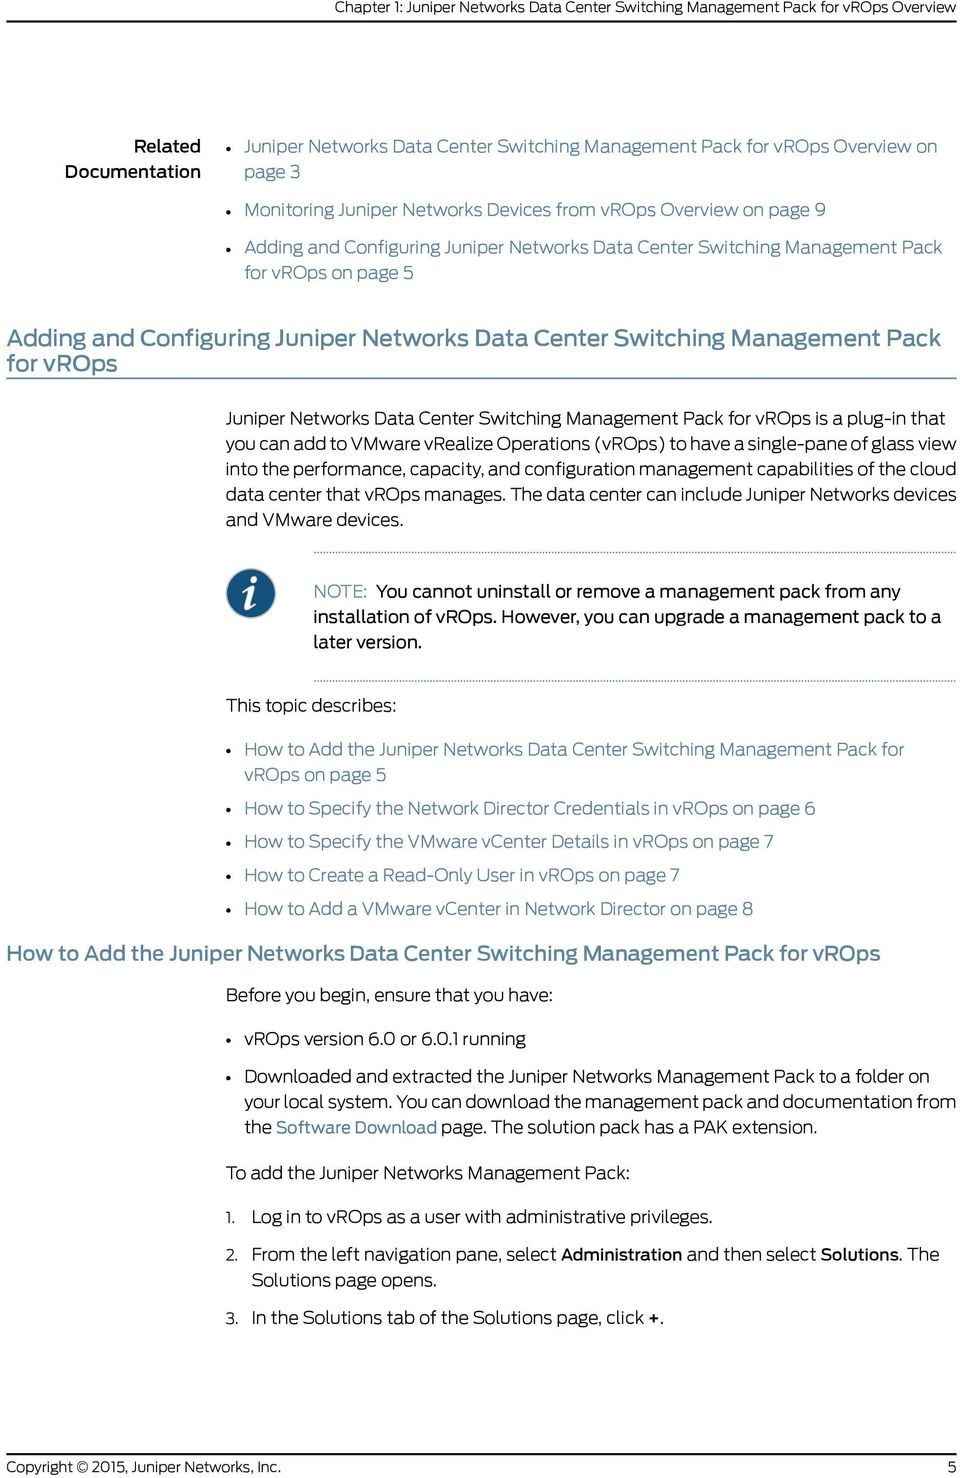 Networks Data Center Switching Management Pack for vrops Juniper Networks Data Center Switching Management Pack for vrops is a plug-in that you can add to VMware vrealize Operations (vrops) to have a